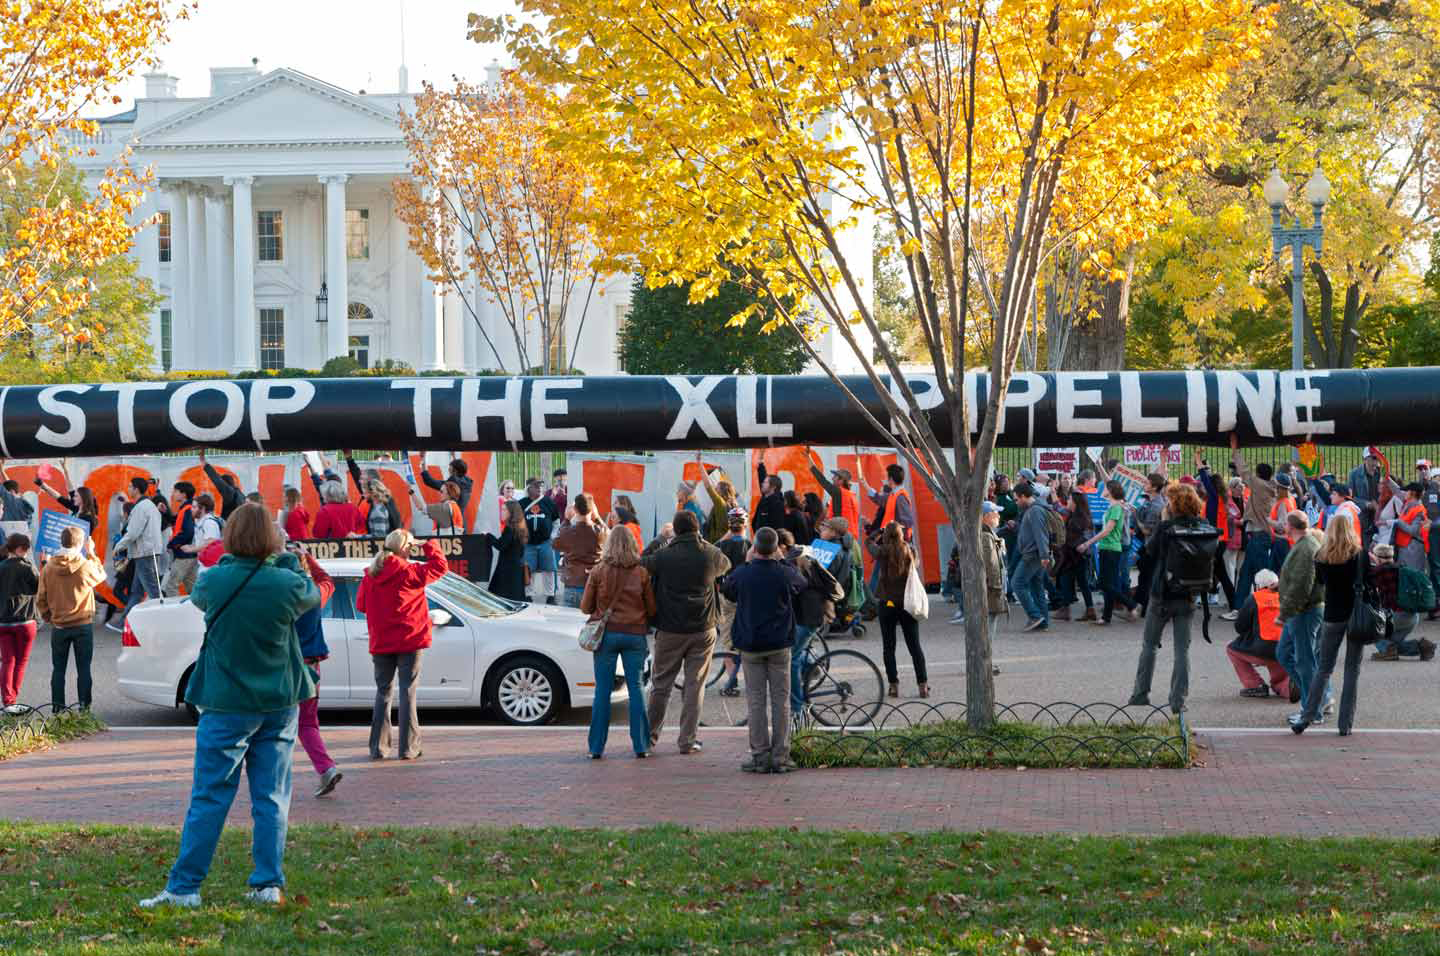 Keystone XL Nov 6 Action